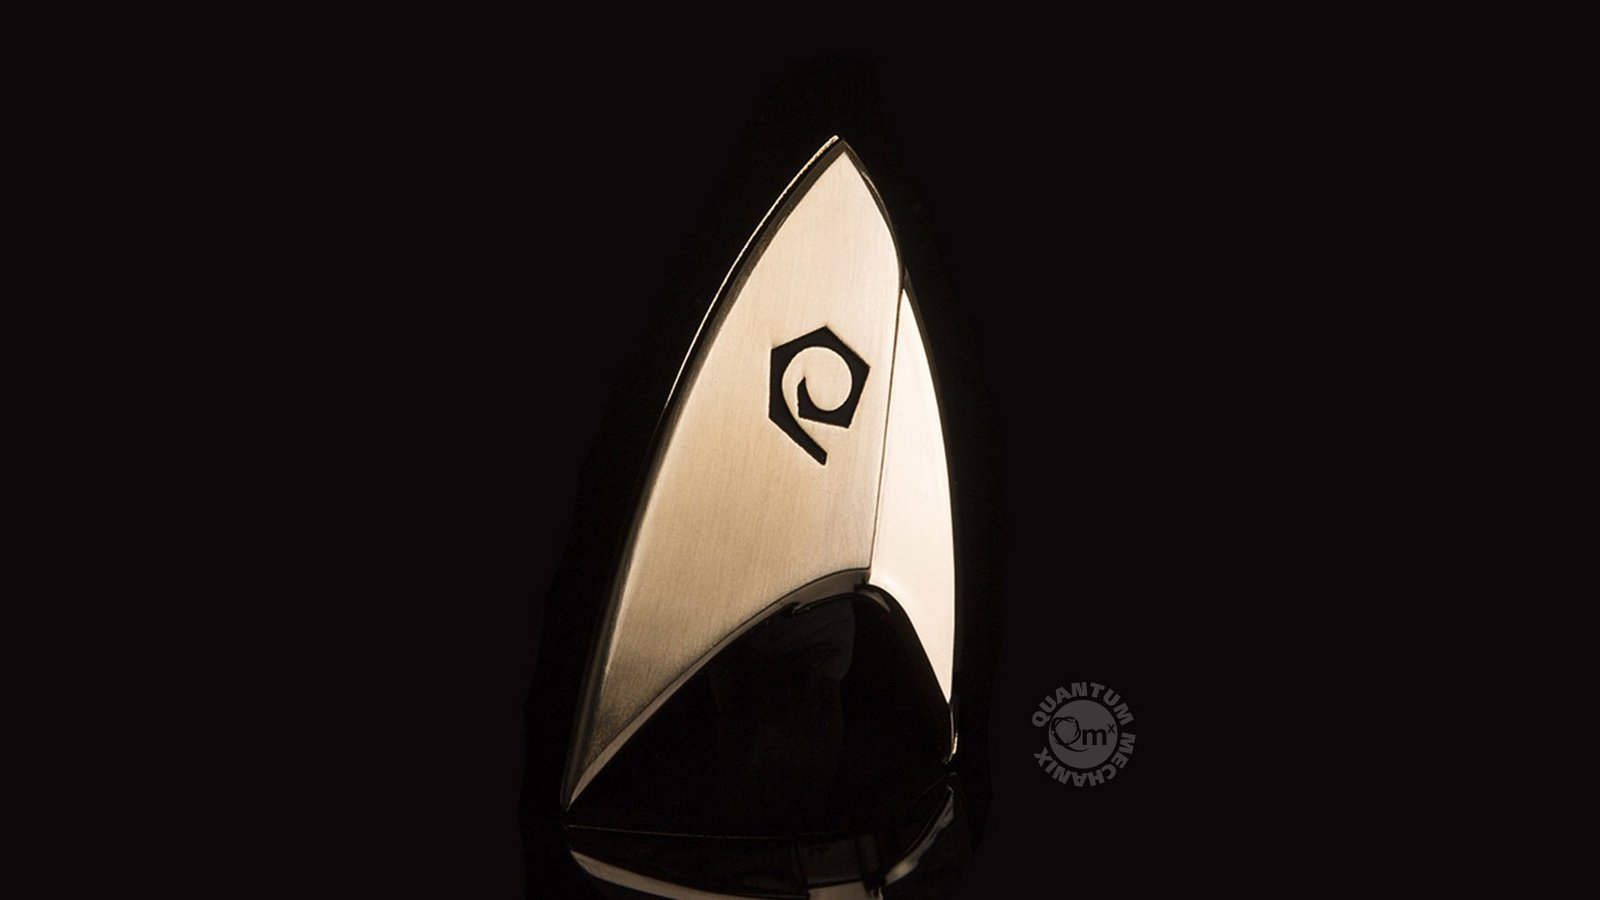 Star Trek: Discovery - Operations Badge Replica image